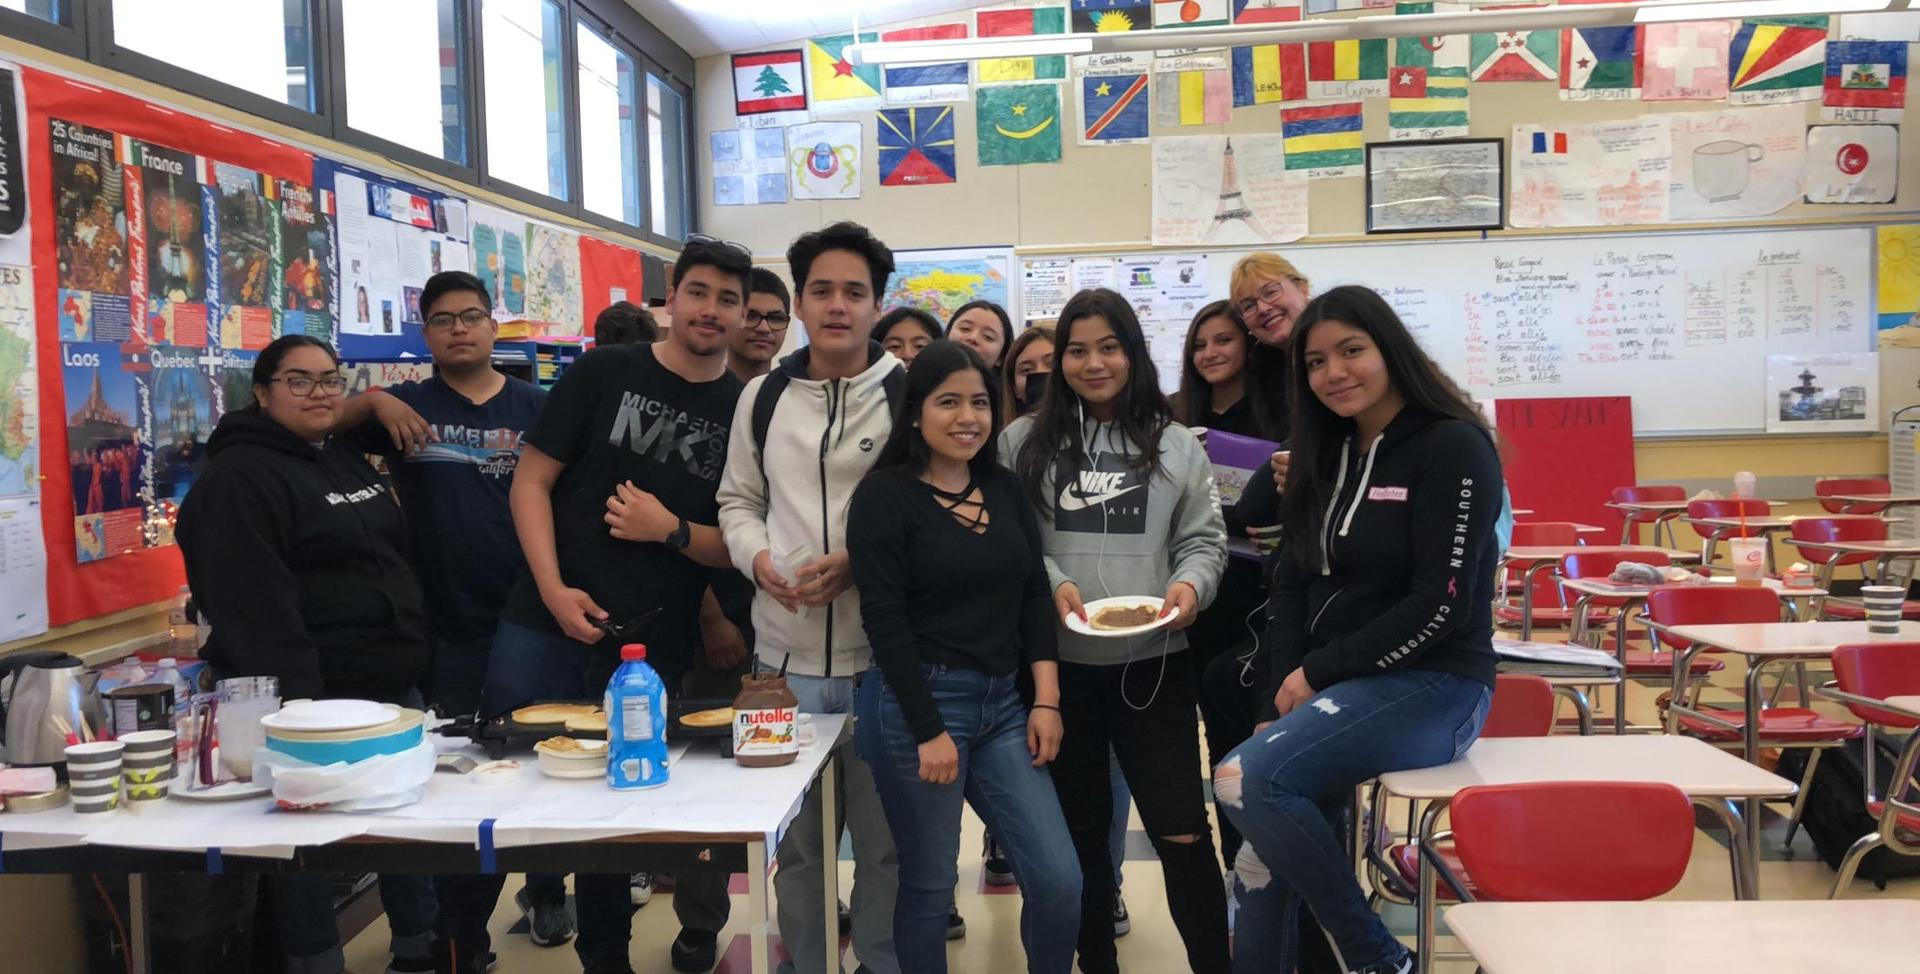 Image of Mme Saade and the French students going to France in April 2019